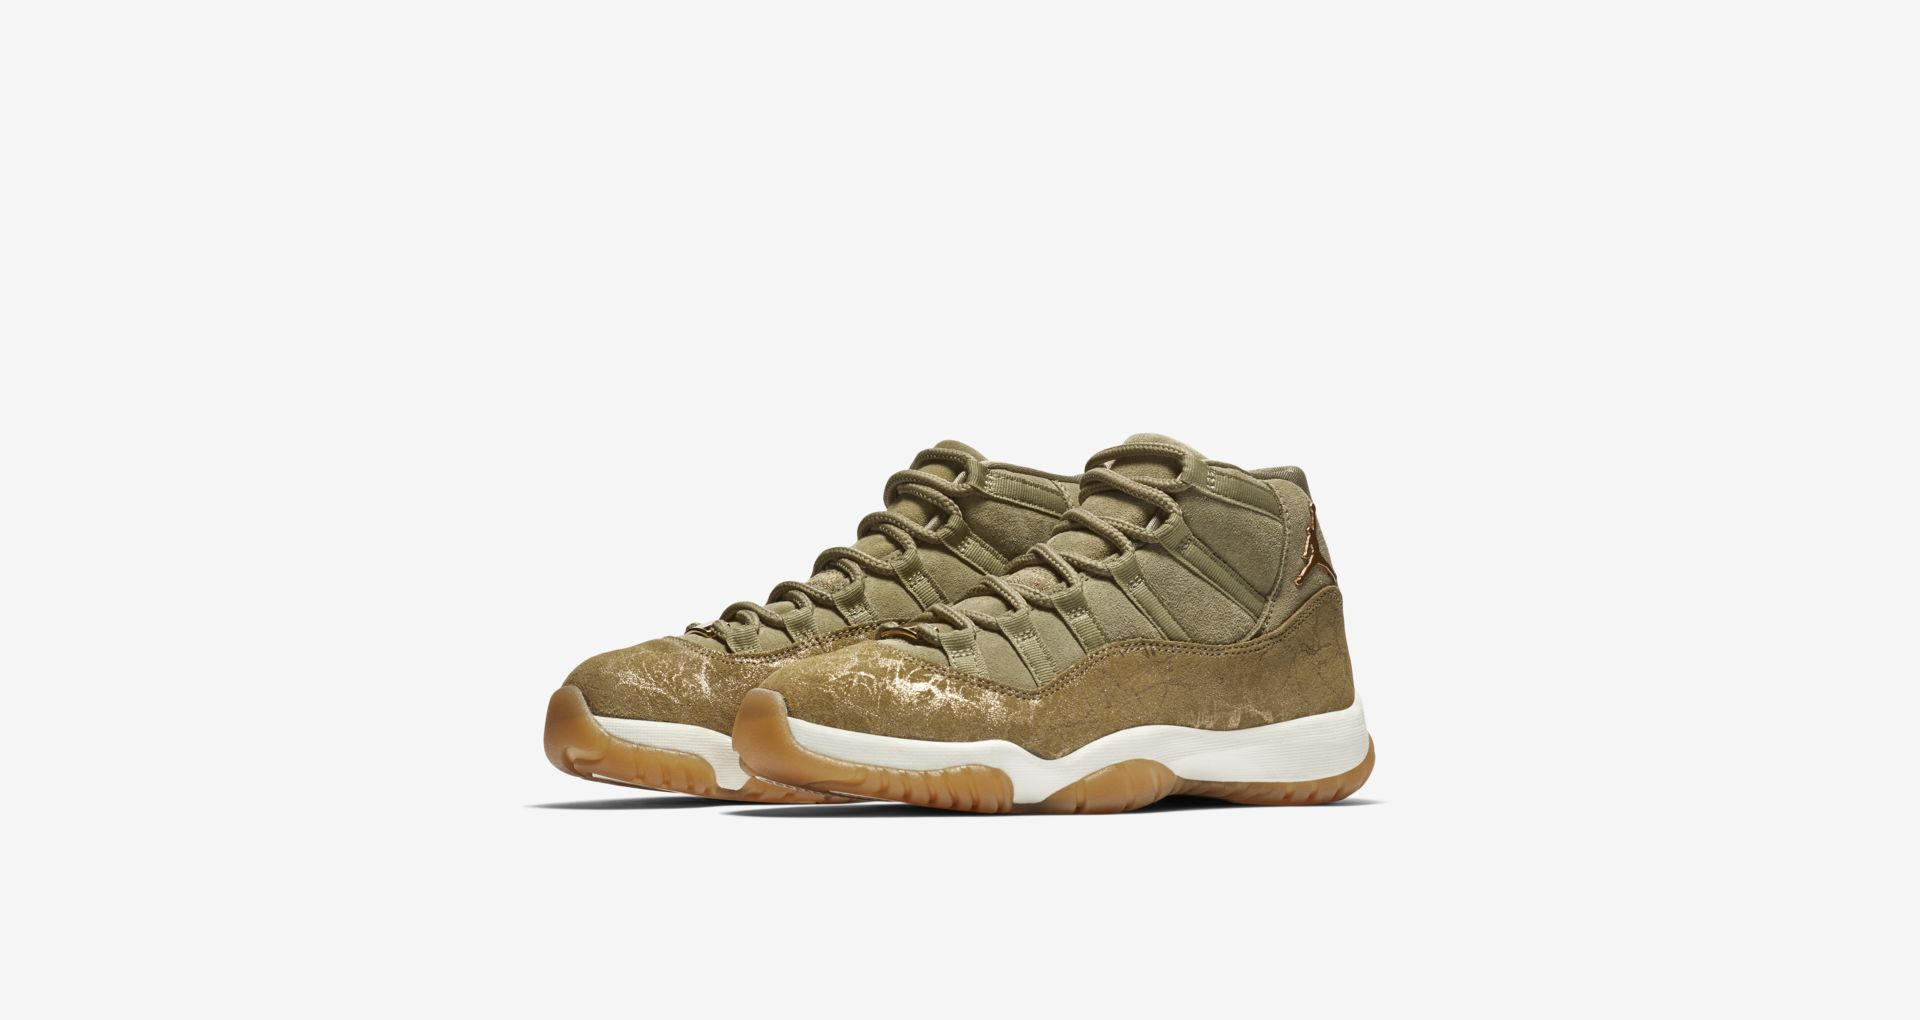 7ad02fa8be Women's Air Jordan 11 Olive Lux AR0715-200   Chicago City Sports